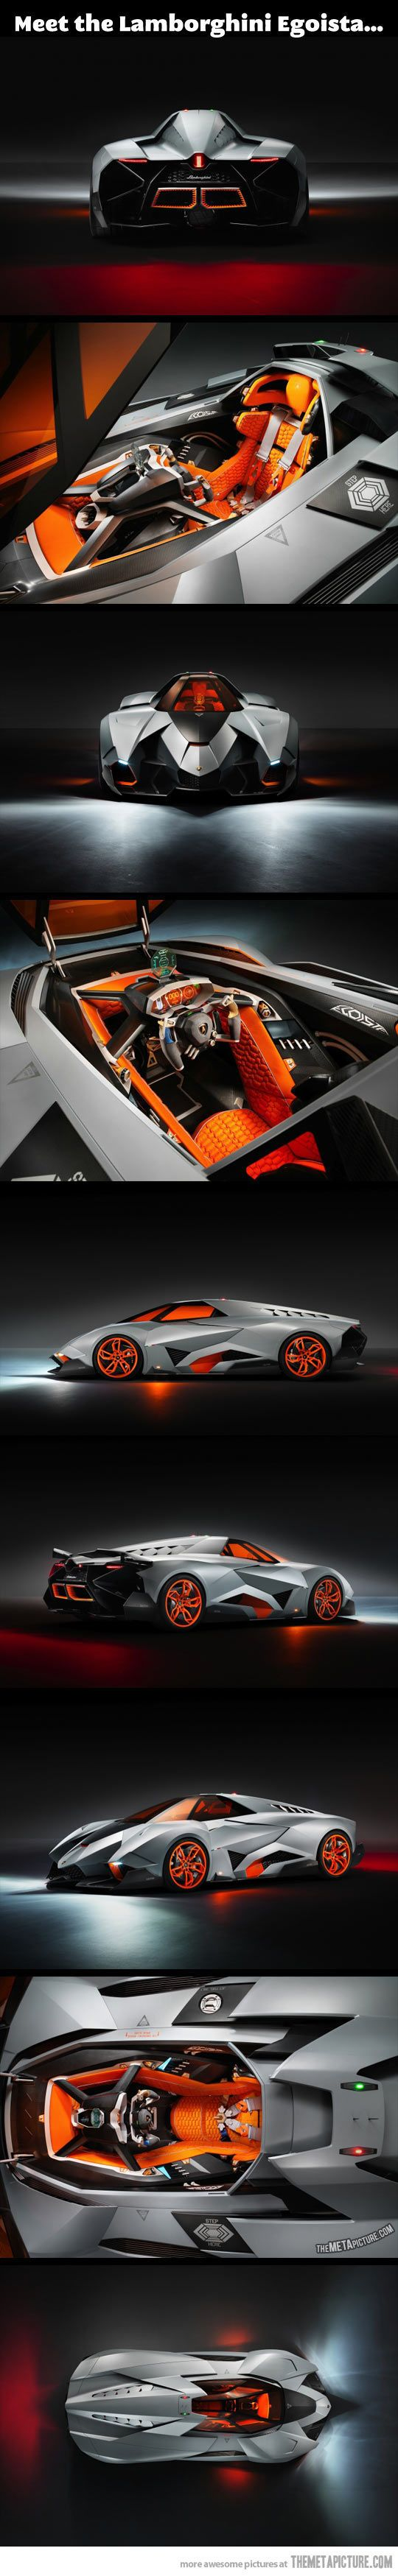 Forget the Batmobile, I want the Lamborghini Egoista... Looks like the cockpit of a future jet fighter, ill take it in matte black